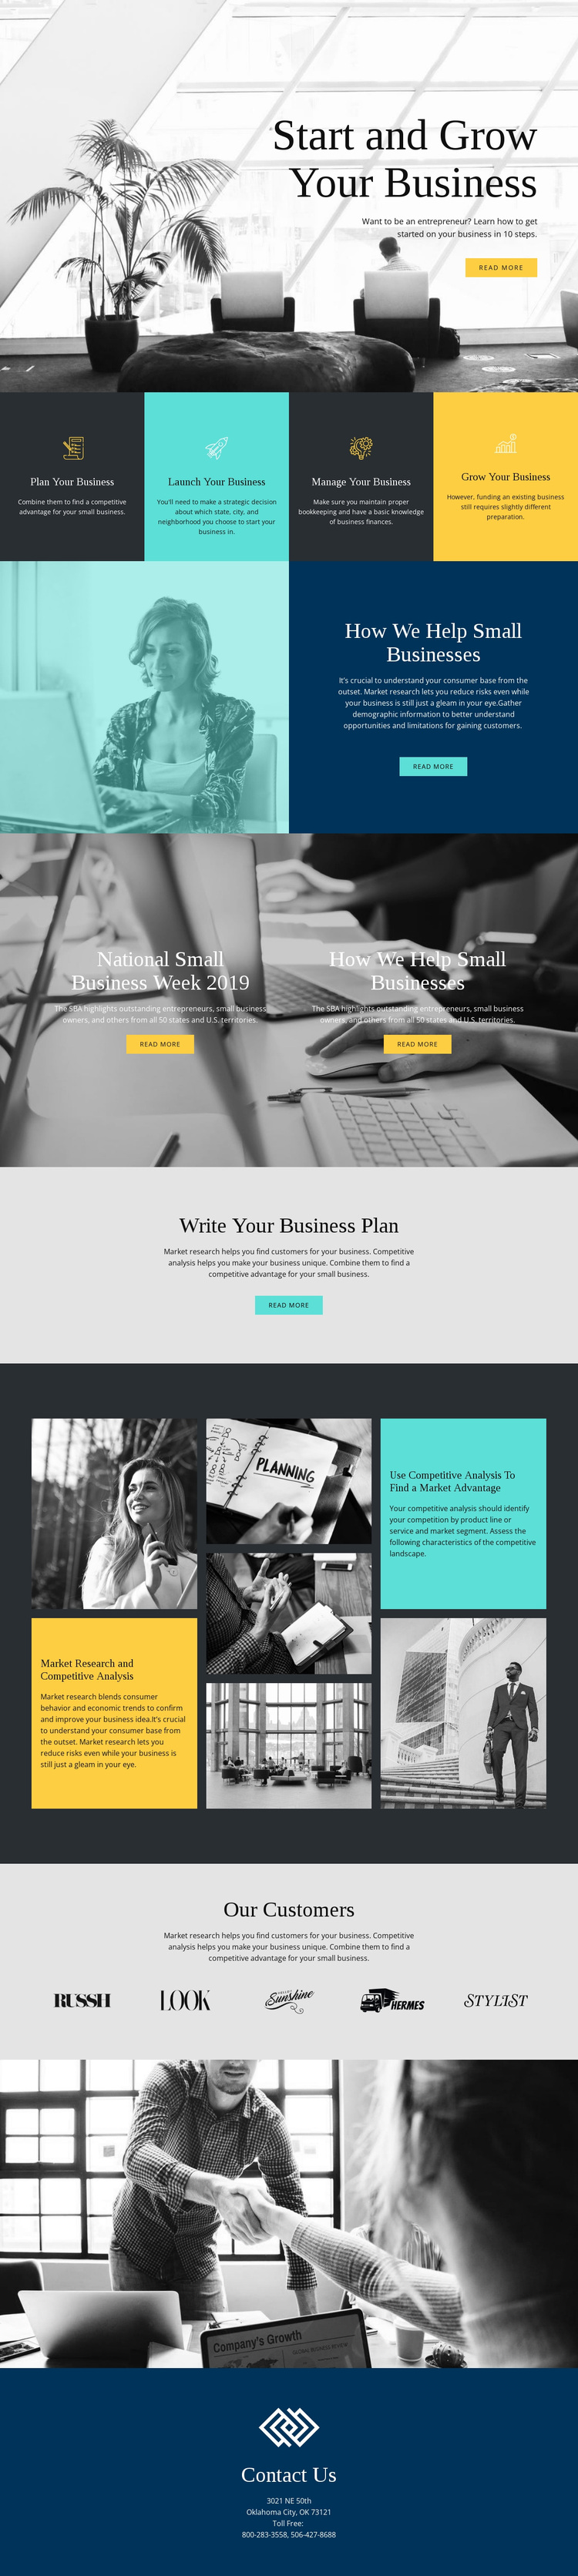 Start and grow your business Joomla Page Builder